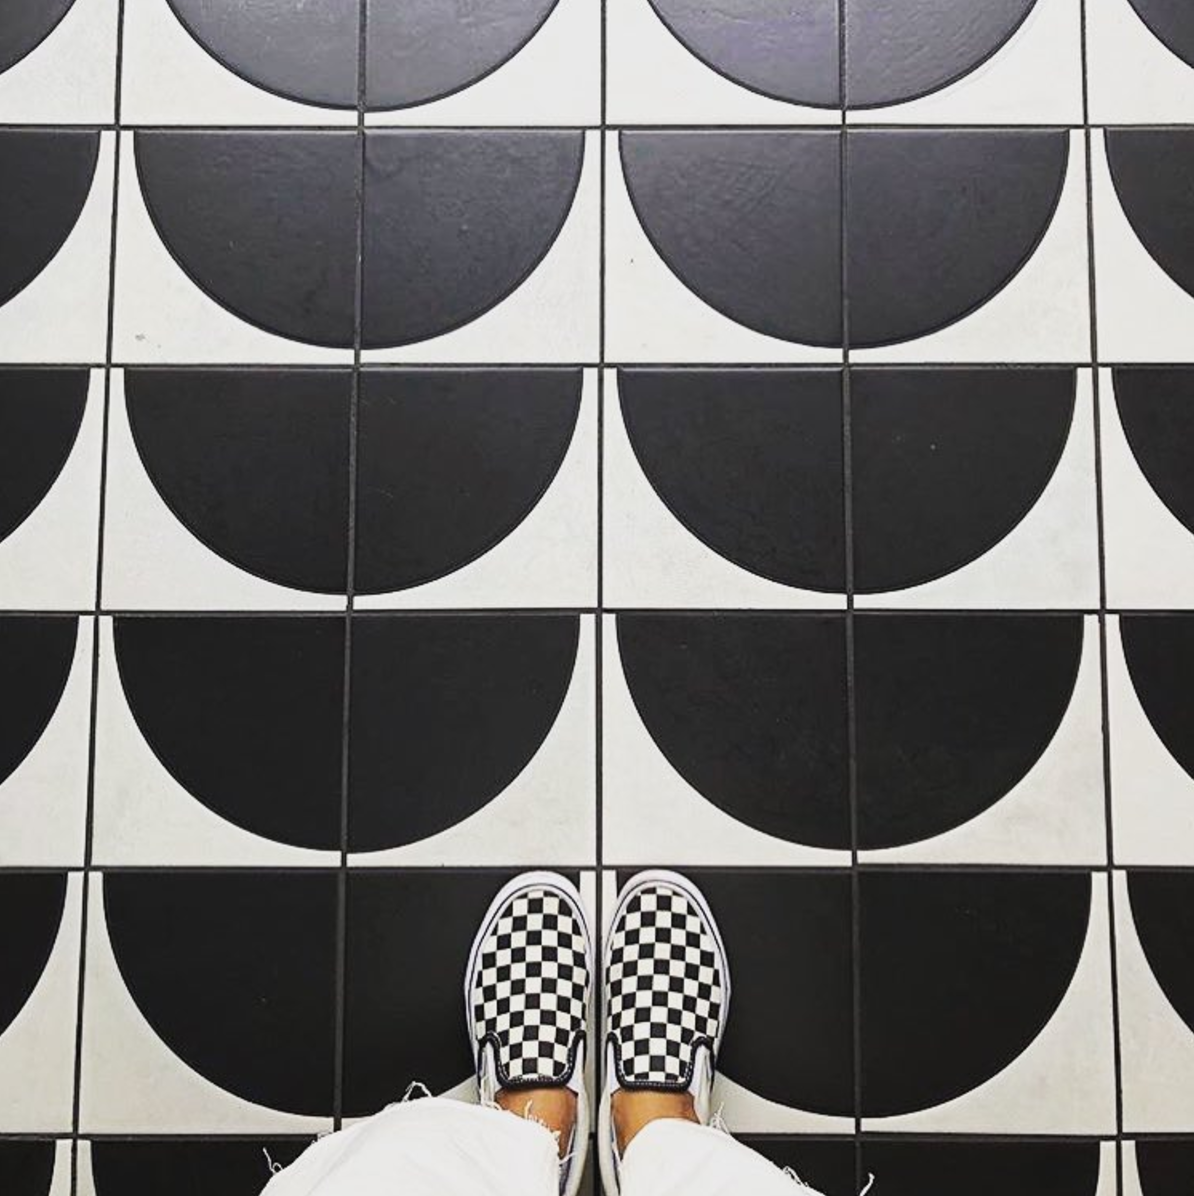 2018_Q1_image_lo_res_commercial_instagram_Sonja_Rasula_The_Unique_Space_floor_tile_handpainted_agrarian_fallow_cool_motif_with_feet.png?mtime=20181005102046#asset:419639